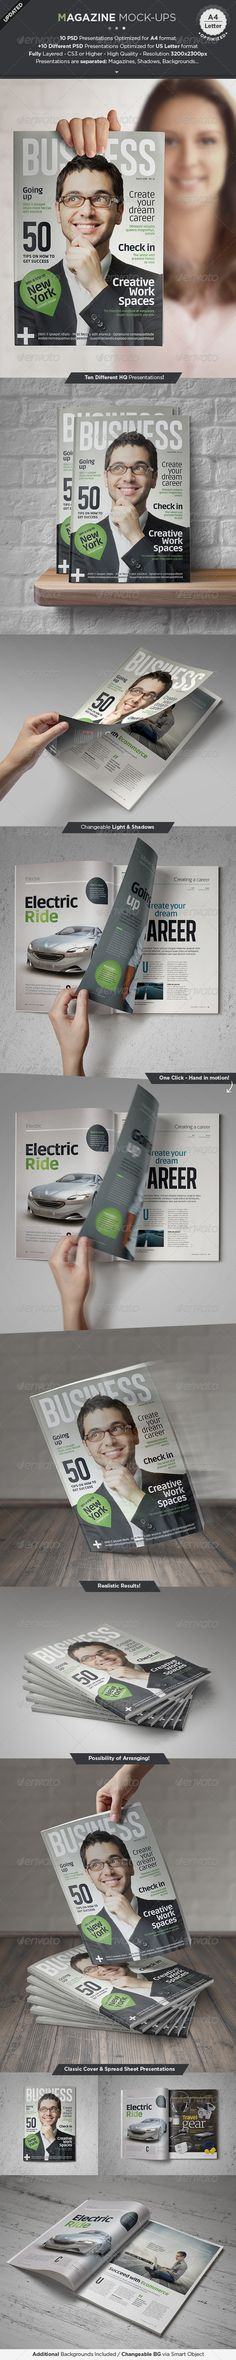 Magazine Mock-Up Set #journalmockup #magazinemockup Download: http://graphicriver.net/item/magazine-mockup-set/5495819?ref=ksioks